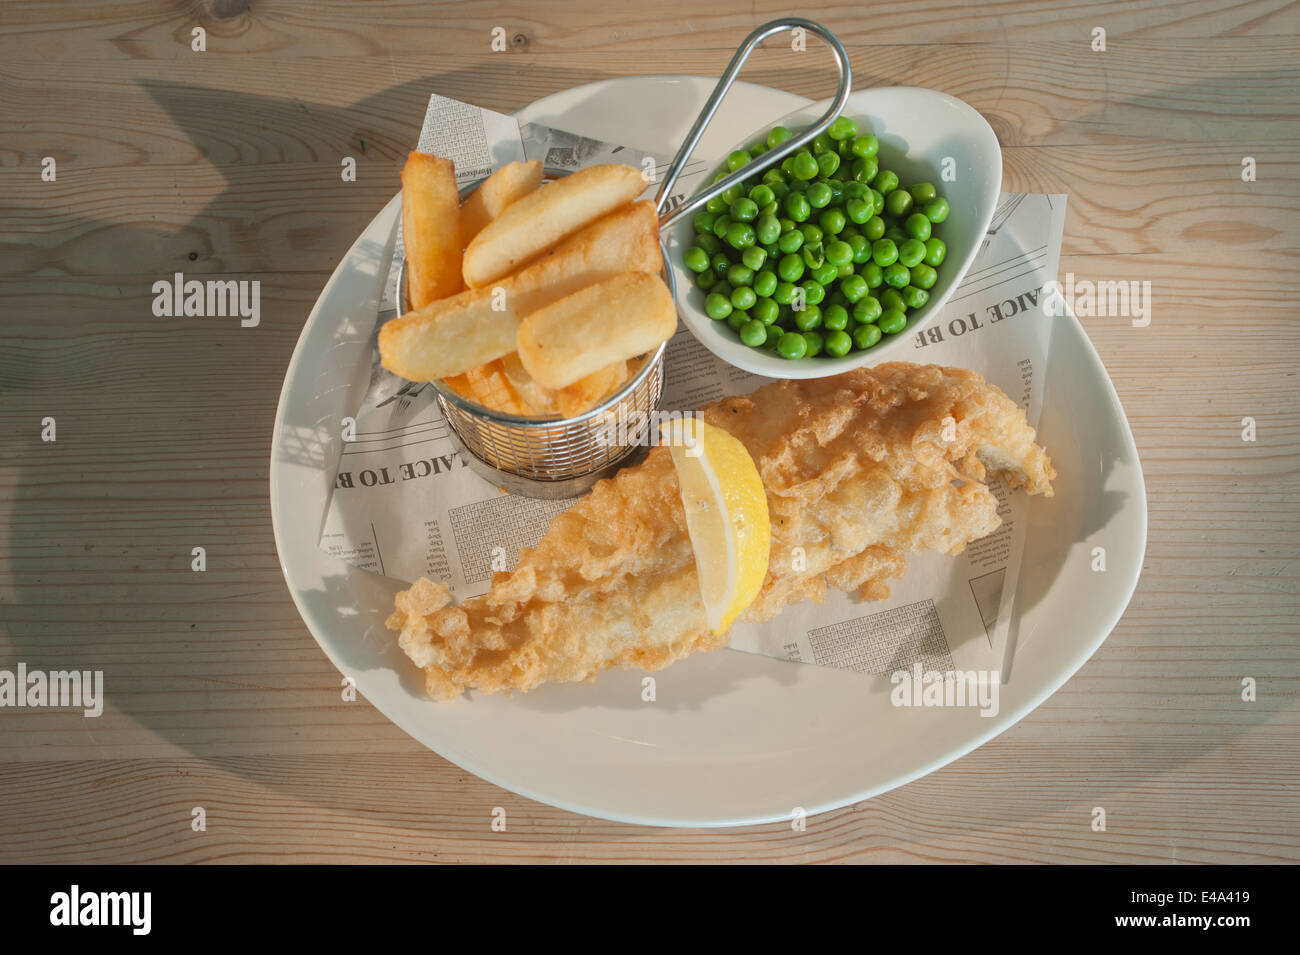 Fish and chips (Haddock in batter) with peas and a segment of lemon on a white plate on a wooden table. - Stock Image